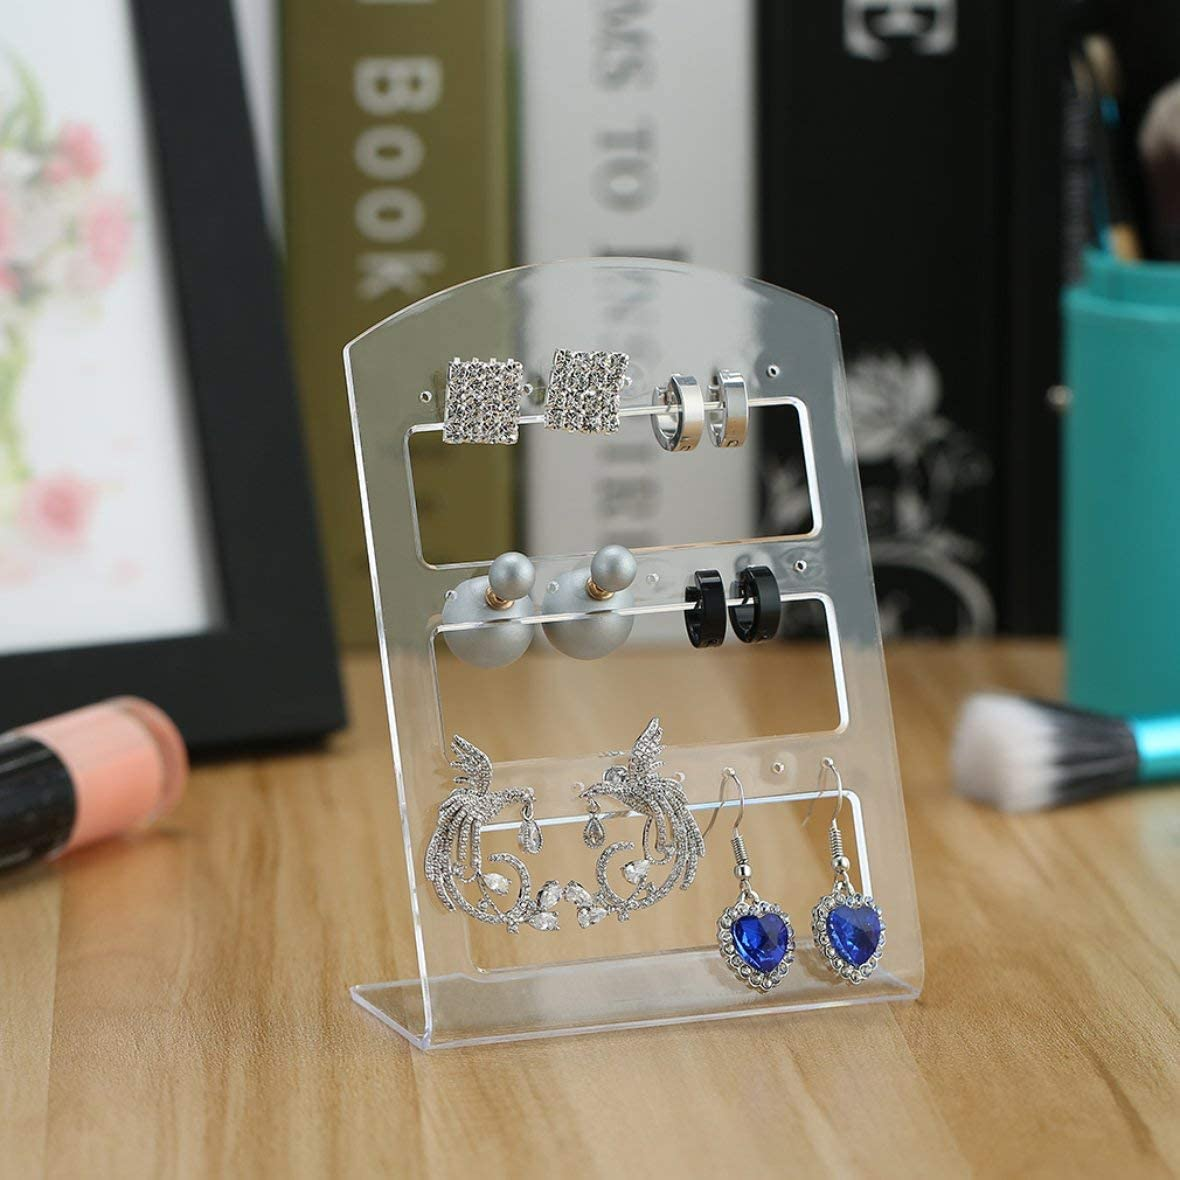 Romirofs 24 Hole Earring Jewelry Show Plastic Display Rack Stand Organizer Holder Transparent Displaying Earrings Ear Stud